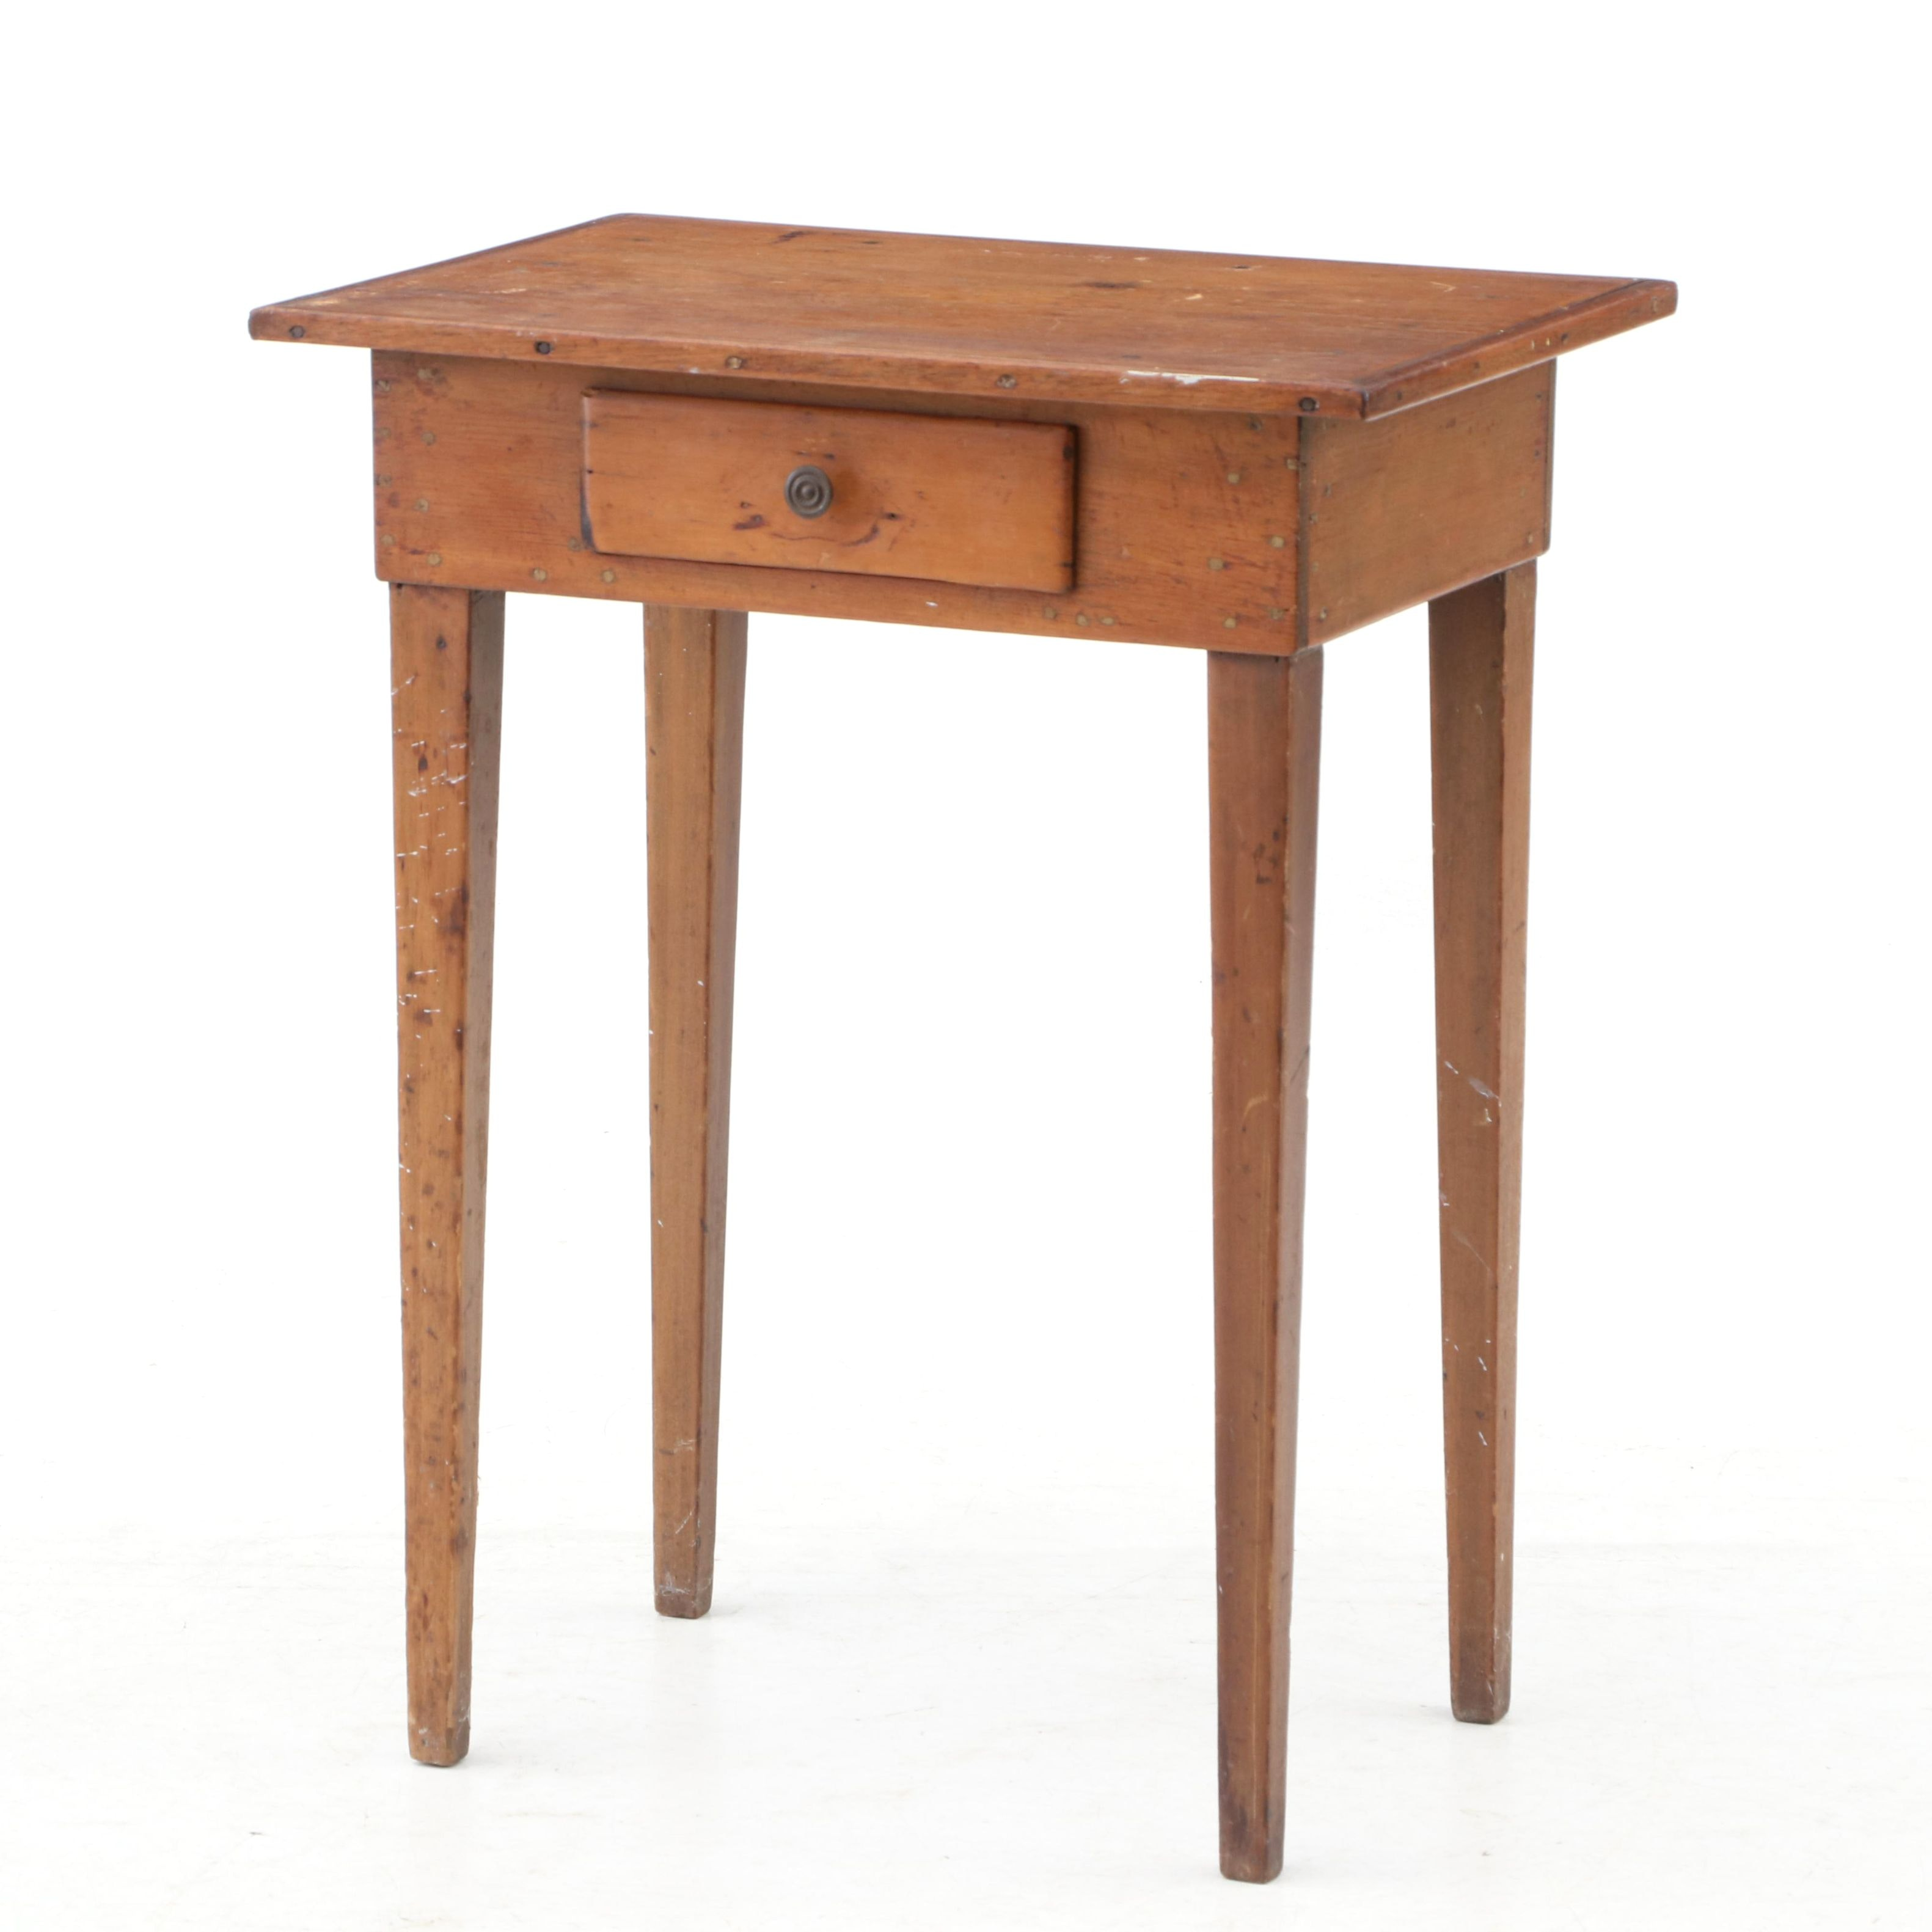 Poplar Table with Drawer, Early 19th Century